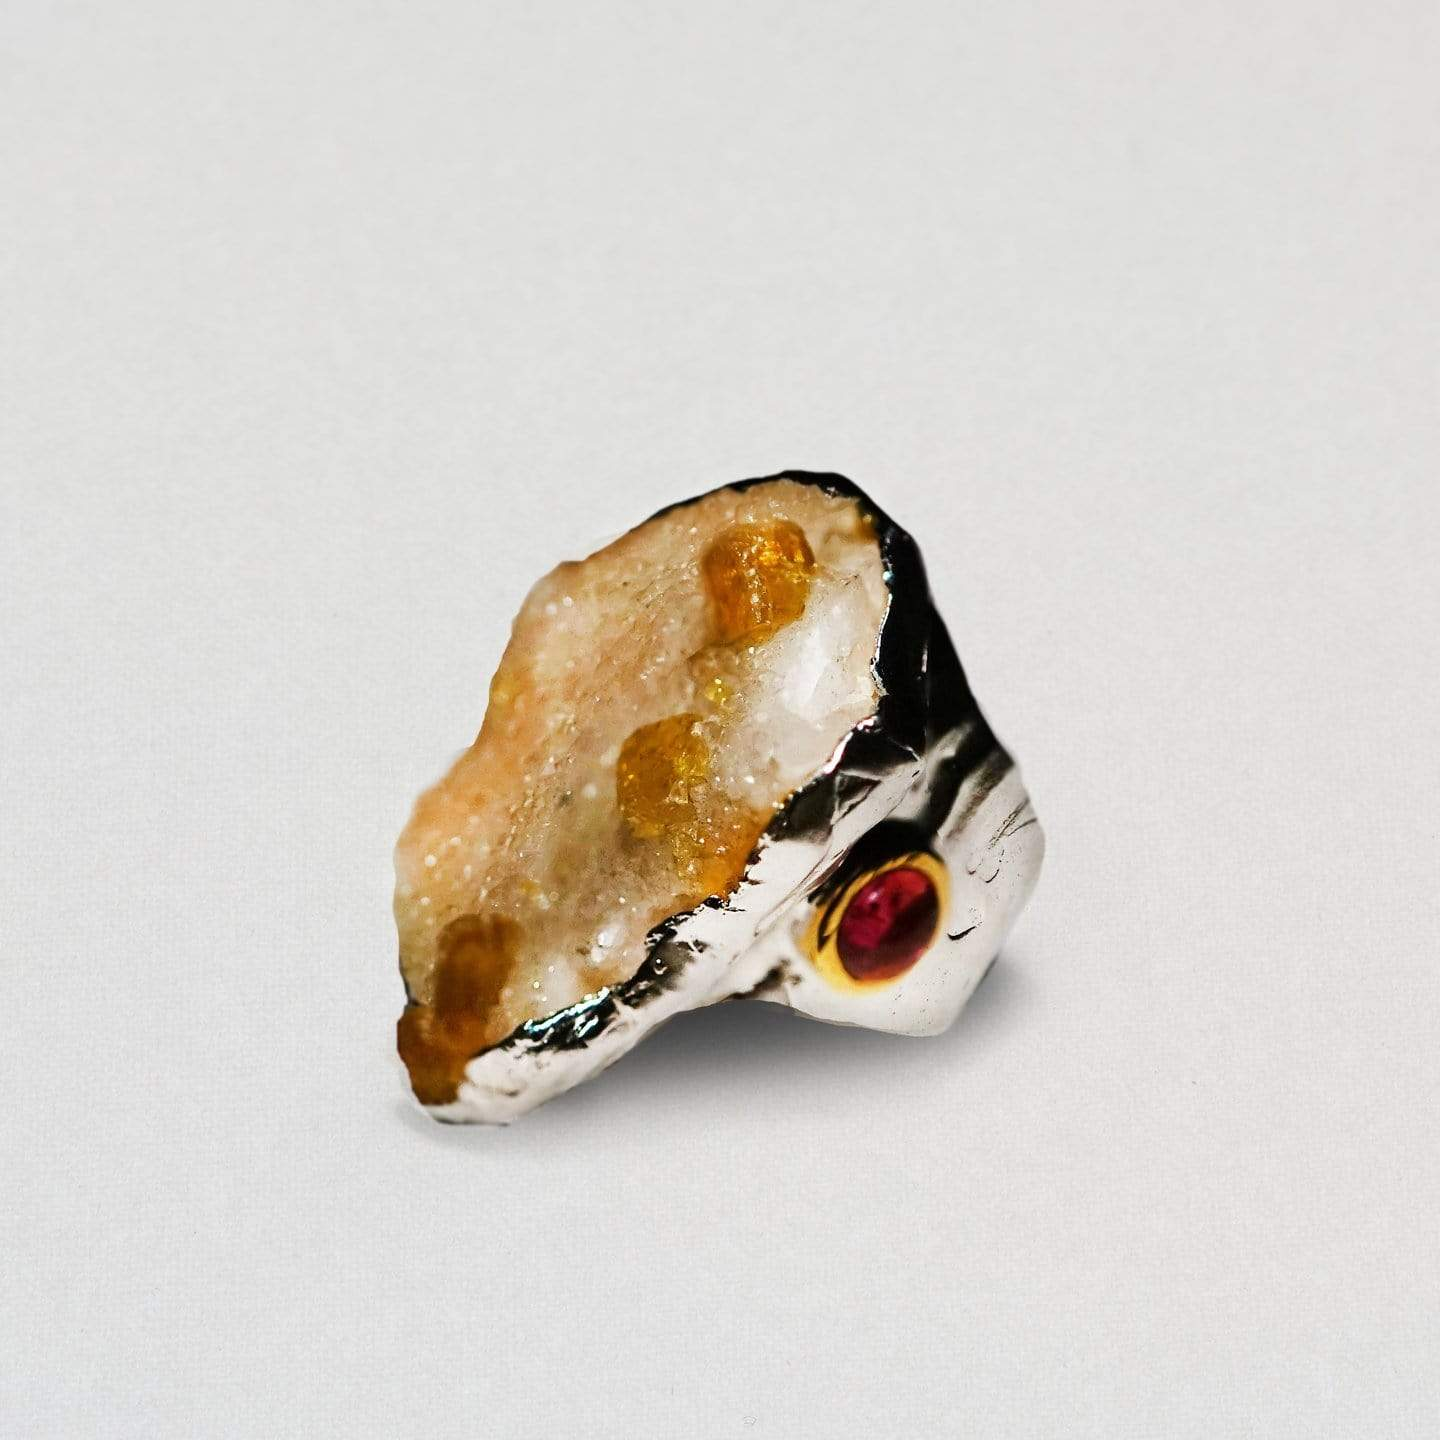 A rounded flat surface on the top of a white rhodium ring. Within the rounded section is a matrix tourmaline. It varies from pale white to deep orange and is richly textured.